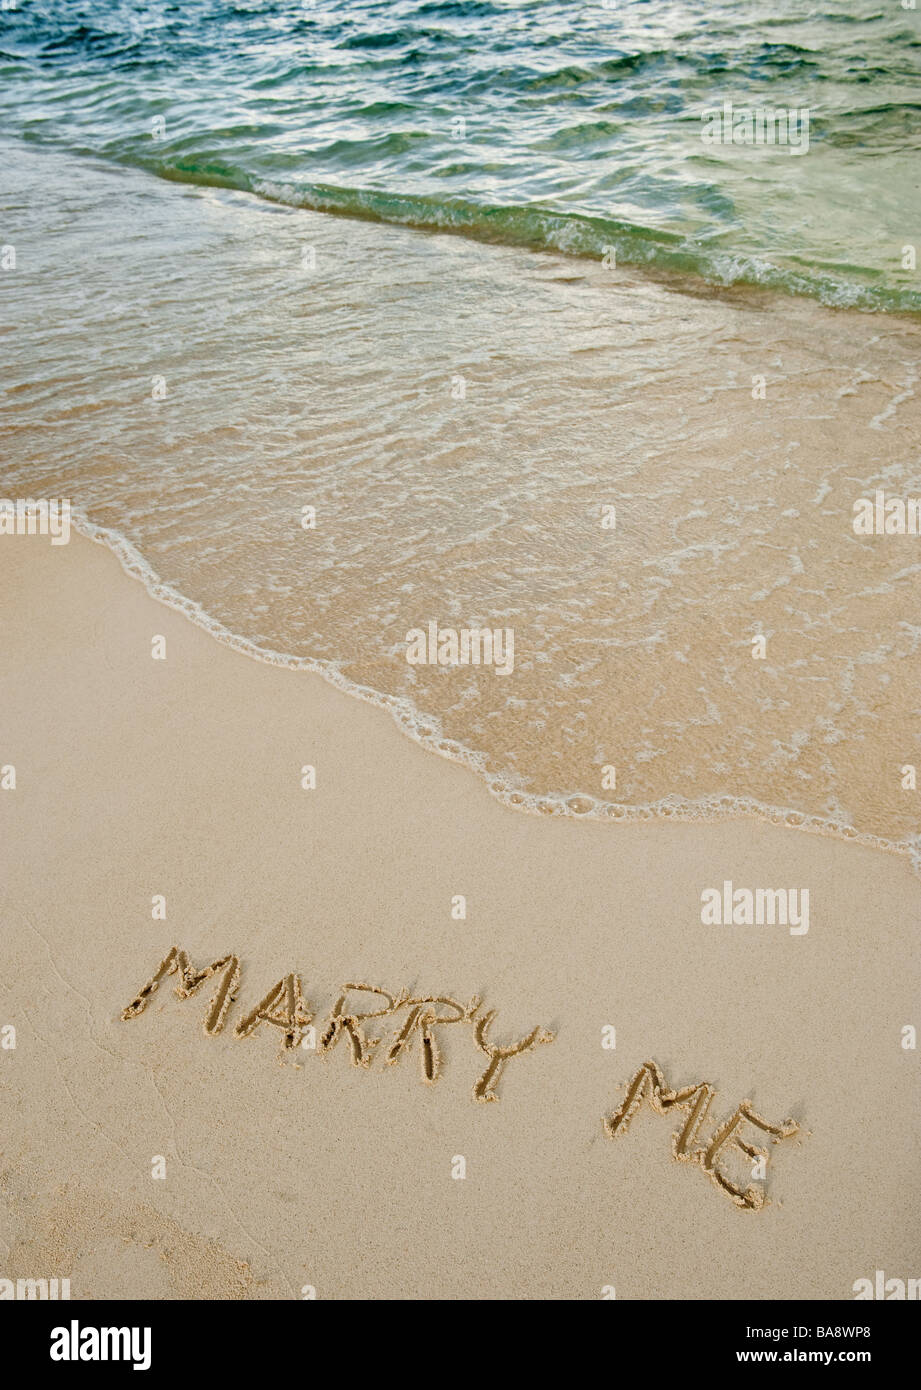 Marry me message written in sand - Stock Image